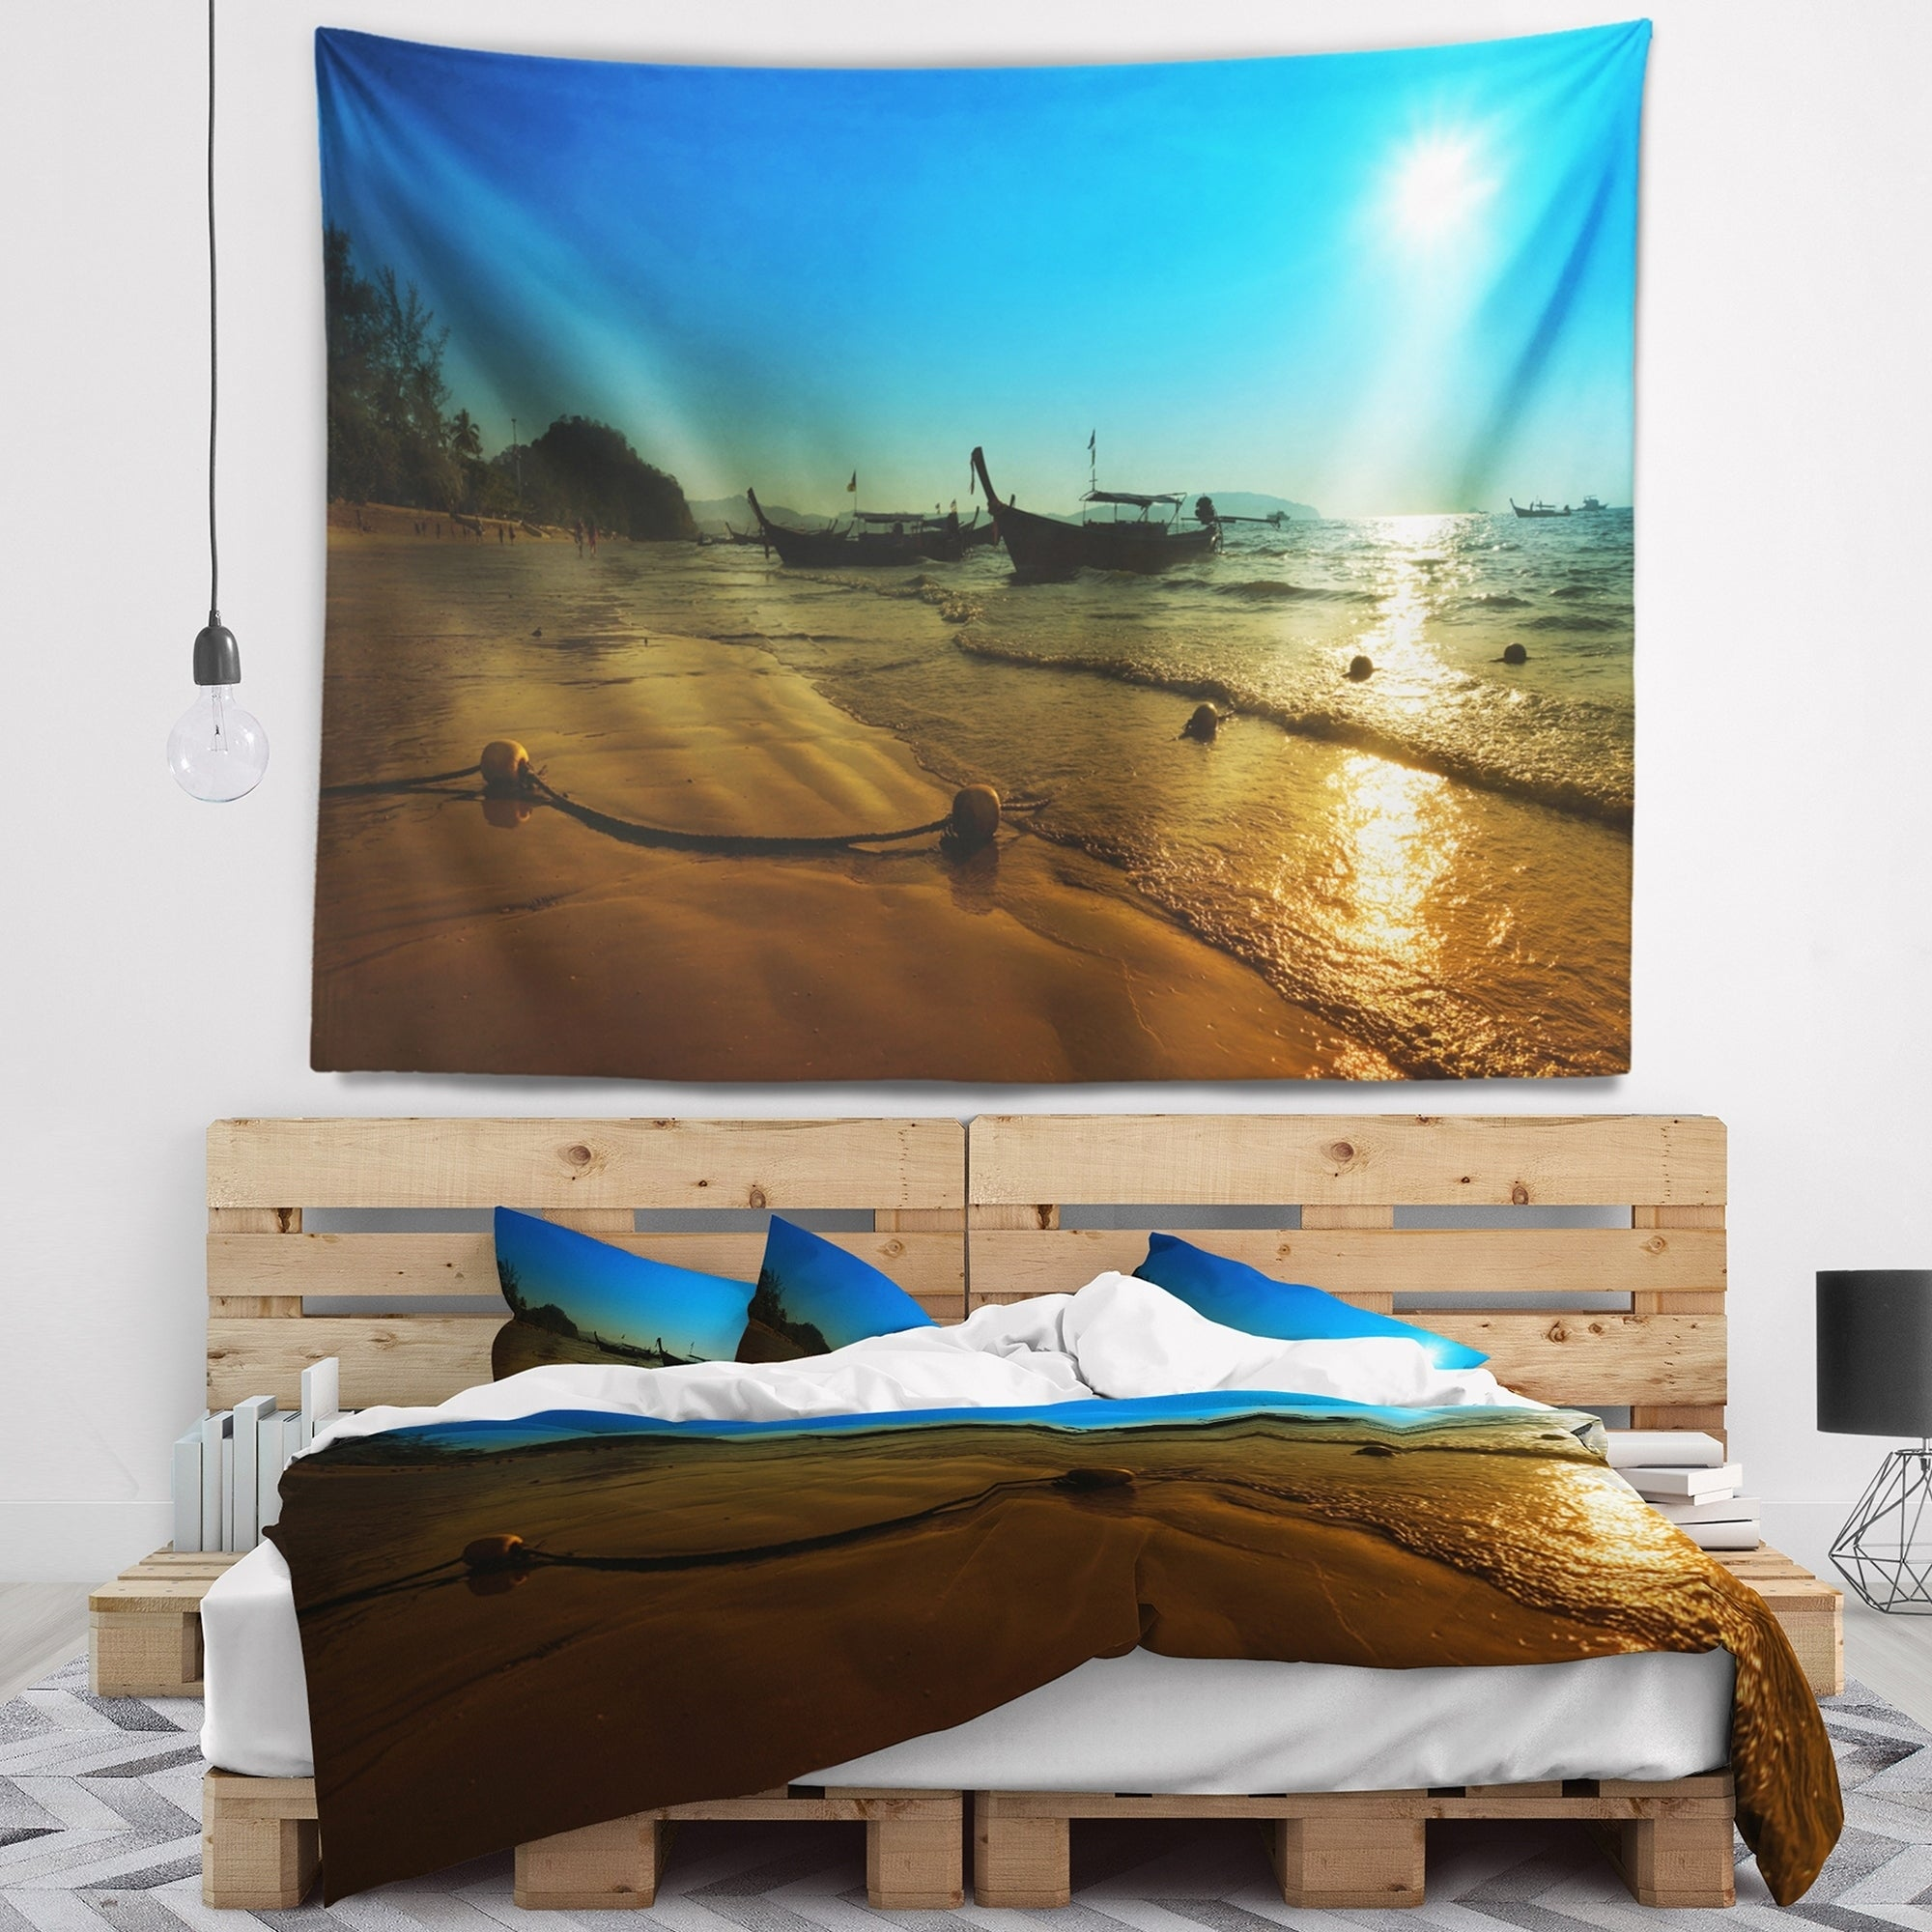 39 in Created On Lightweight Polyester Fabric Designart TAP11458-39-32  Sunset with Boats in Andaman Sea Modern Seascape Blanket D/écor Art for Home and Office Wall Tapestry Medium x 32 in